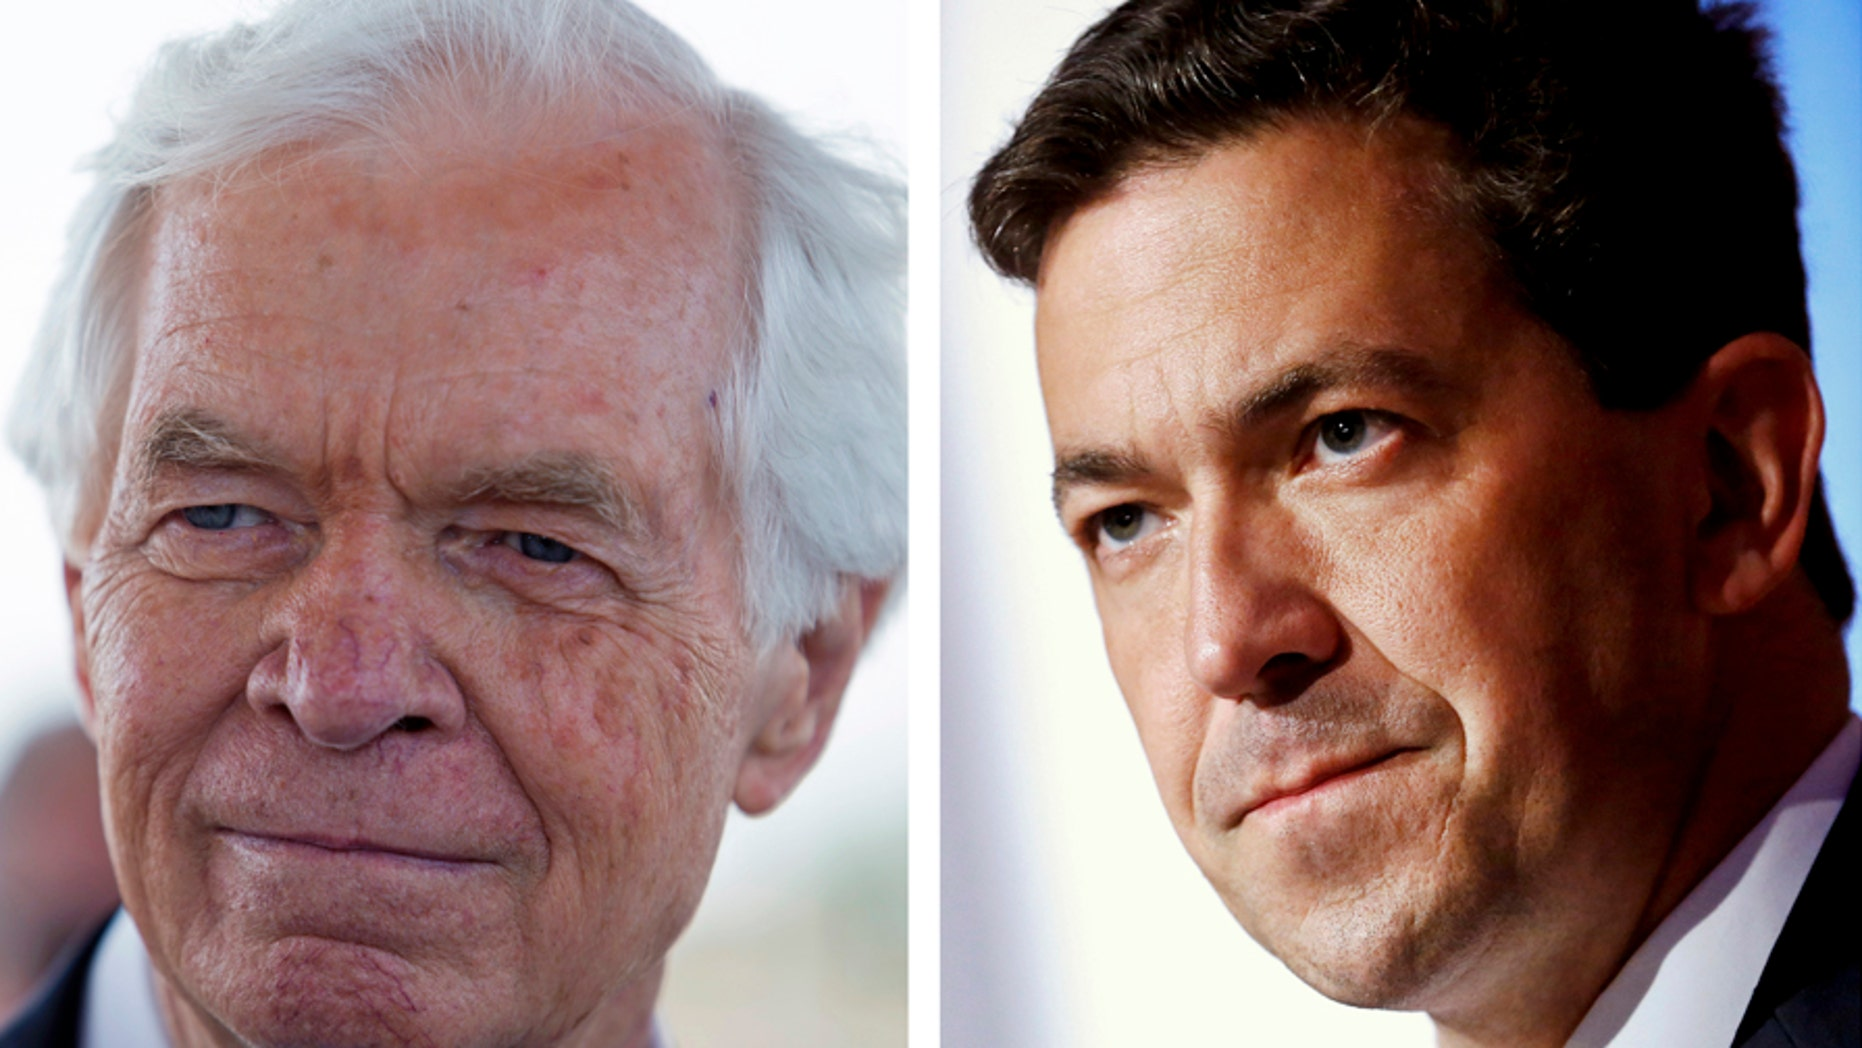 Sen. Thad Cochran, R-Miss., left, resigned last week, leaving his seat vacant. State Sen. Chris McDaniel, right, who unsuccessfully ran for the Cochran seat in 2014, will again run to fill that Senate seat, instead of incumbent Sen. Roger Wicker, R-Miss.